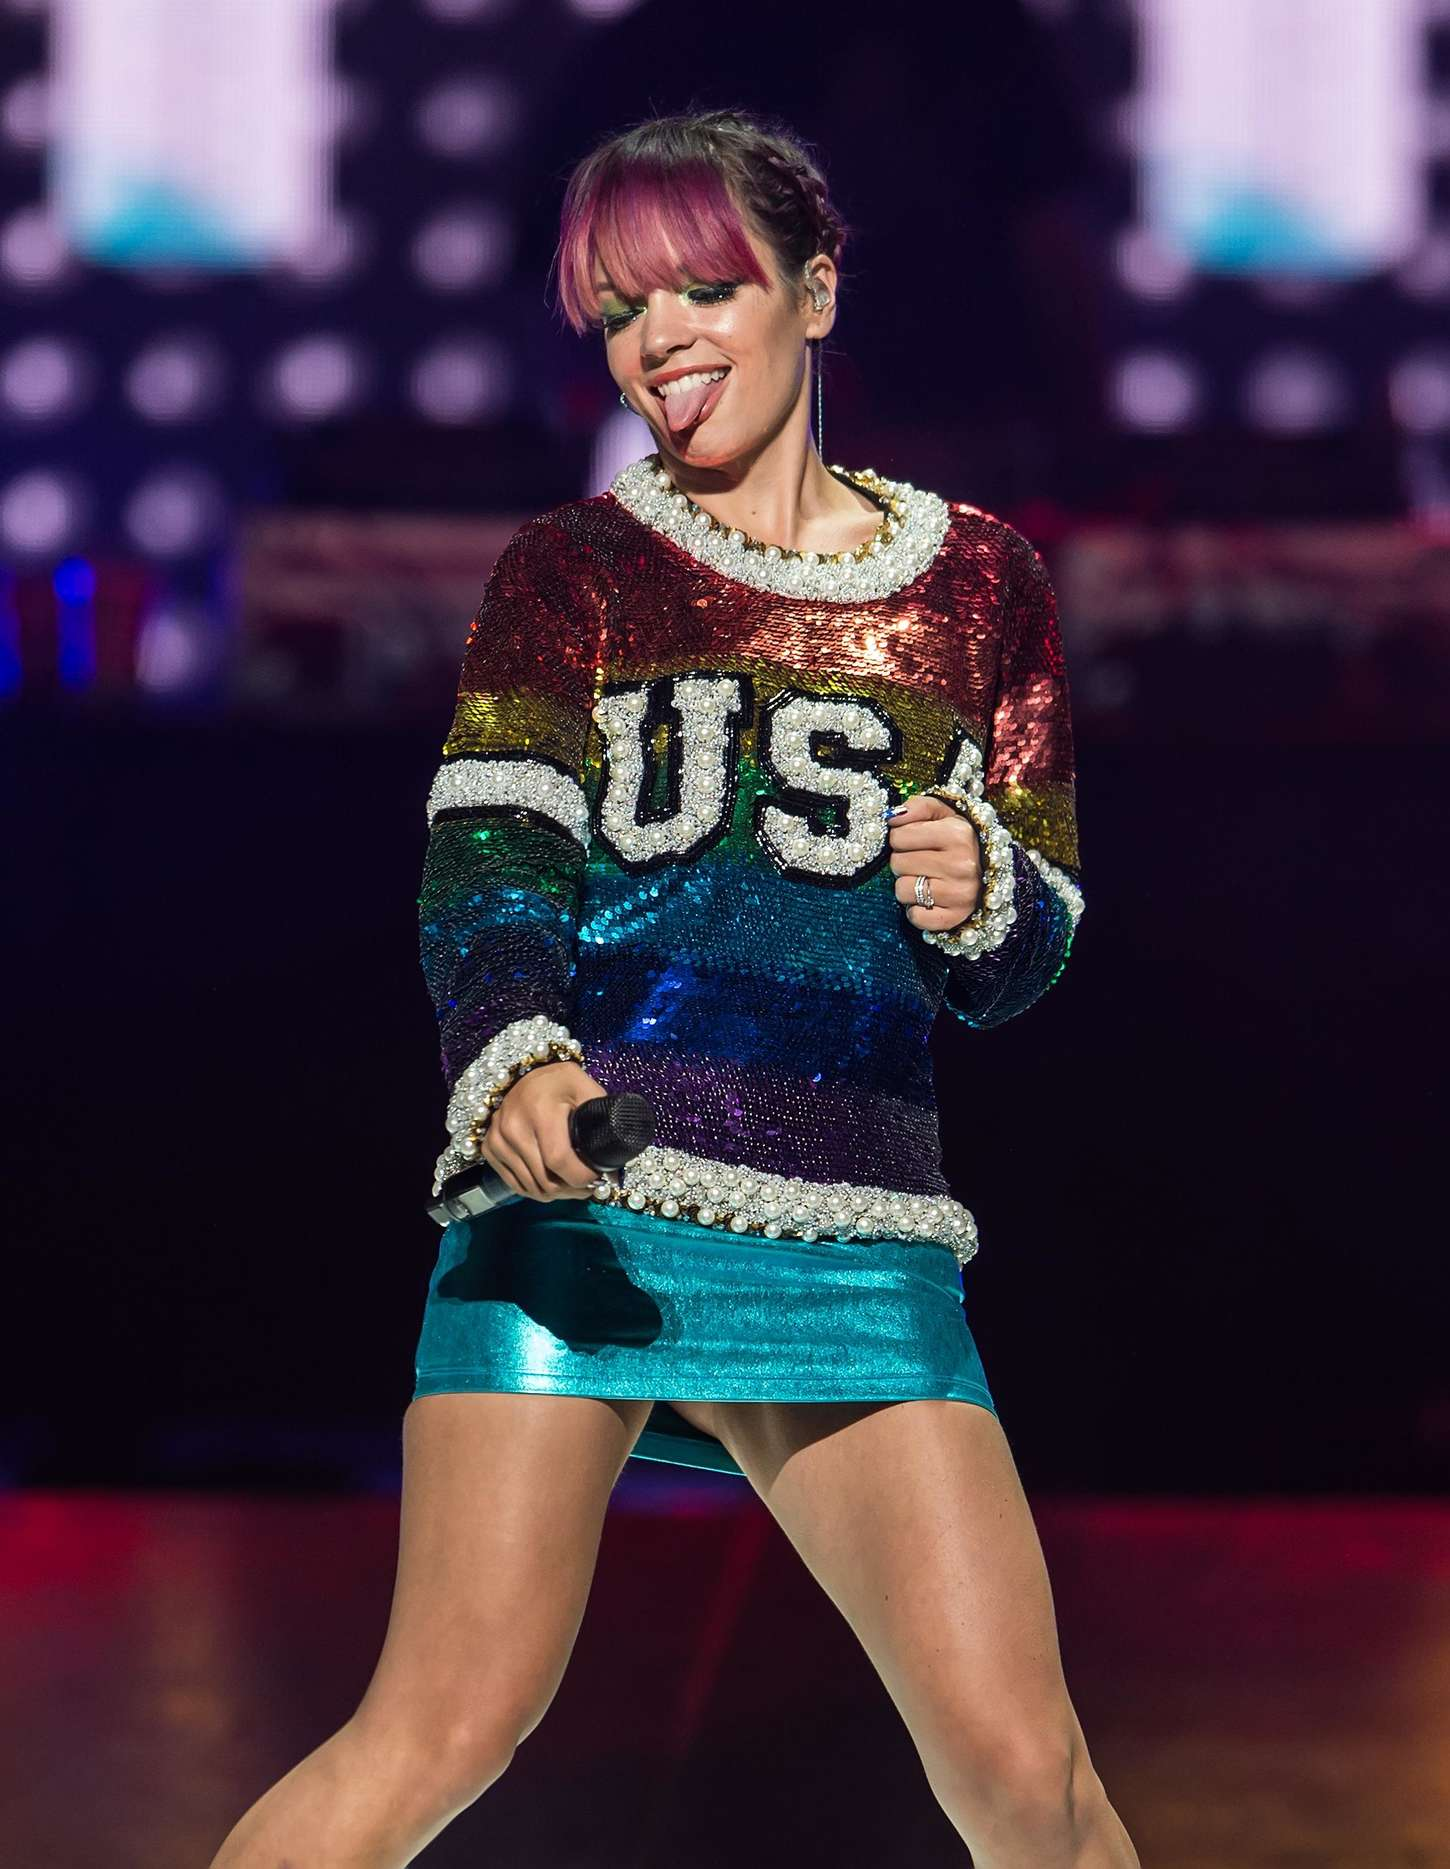 Lily Allen Live Supporting Miley Cyrus Wells Fargo Center in Philadelphia